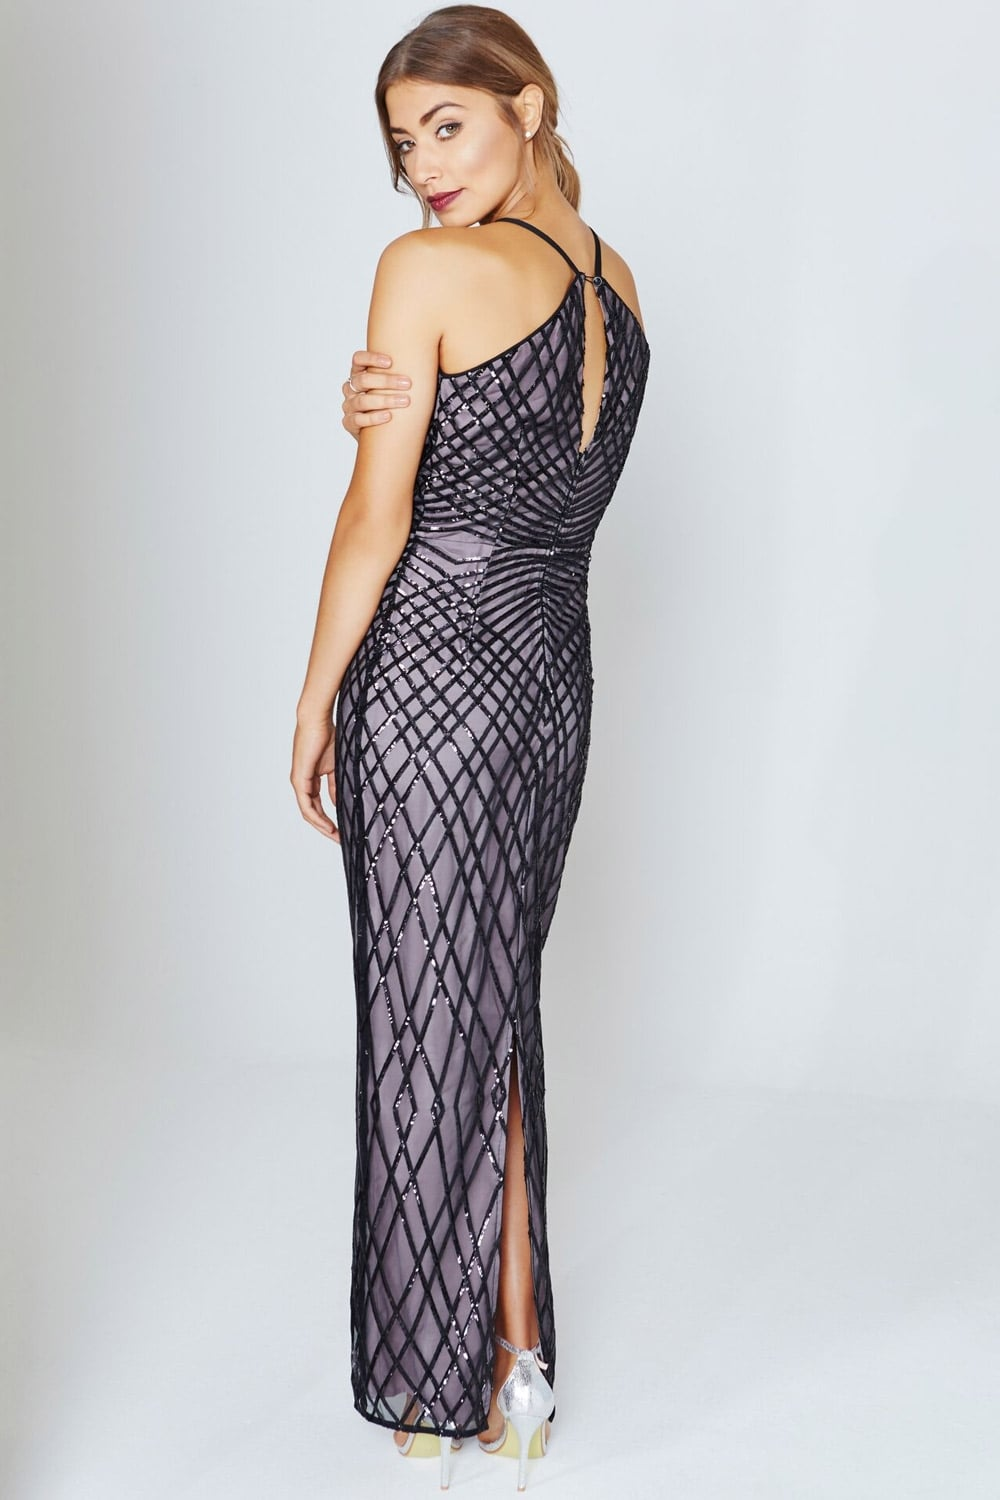 c6ce9bffa3 Sequin Maxi Related Keywords   Suggestions - Sequin Maxi Long Tail ...